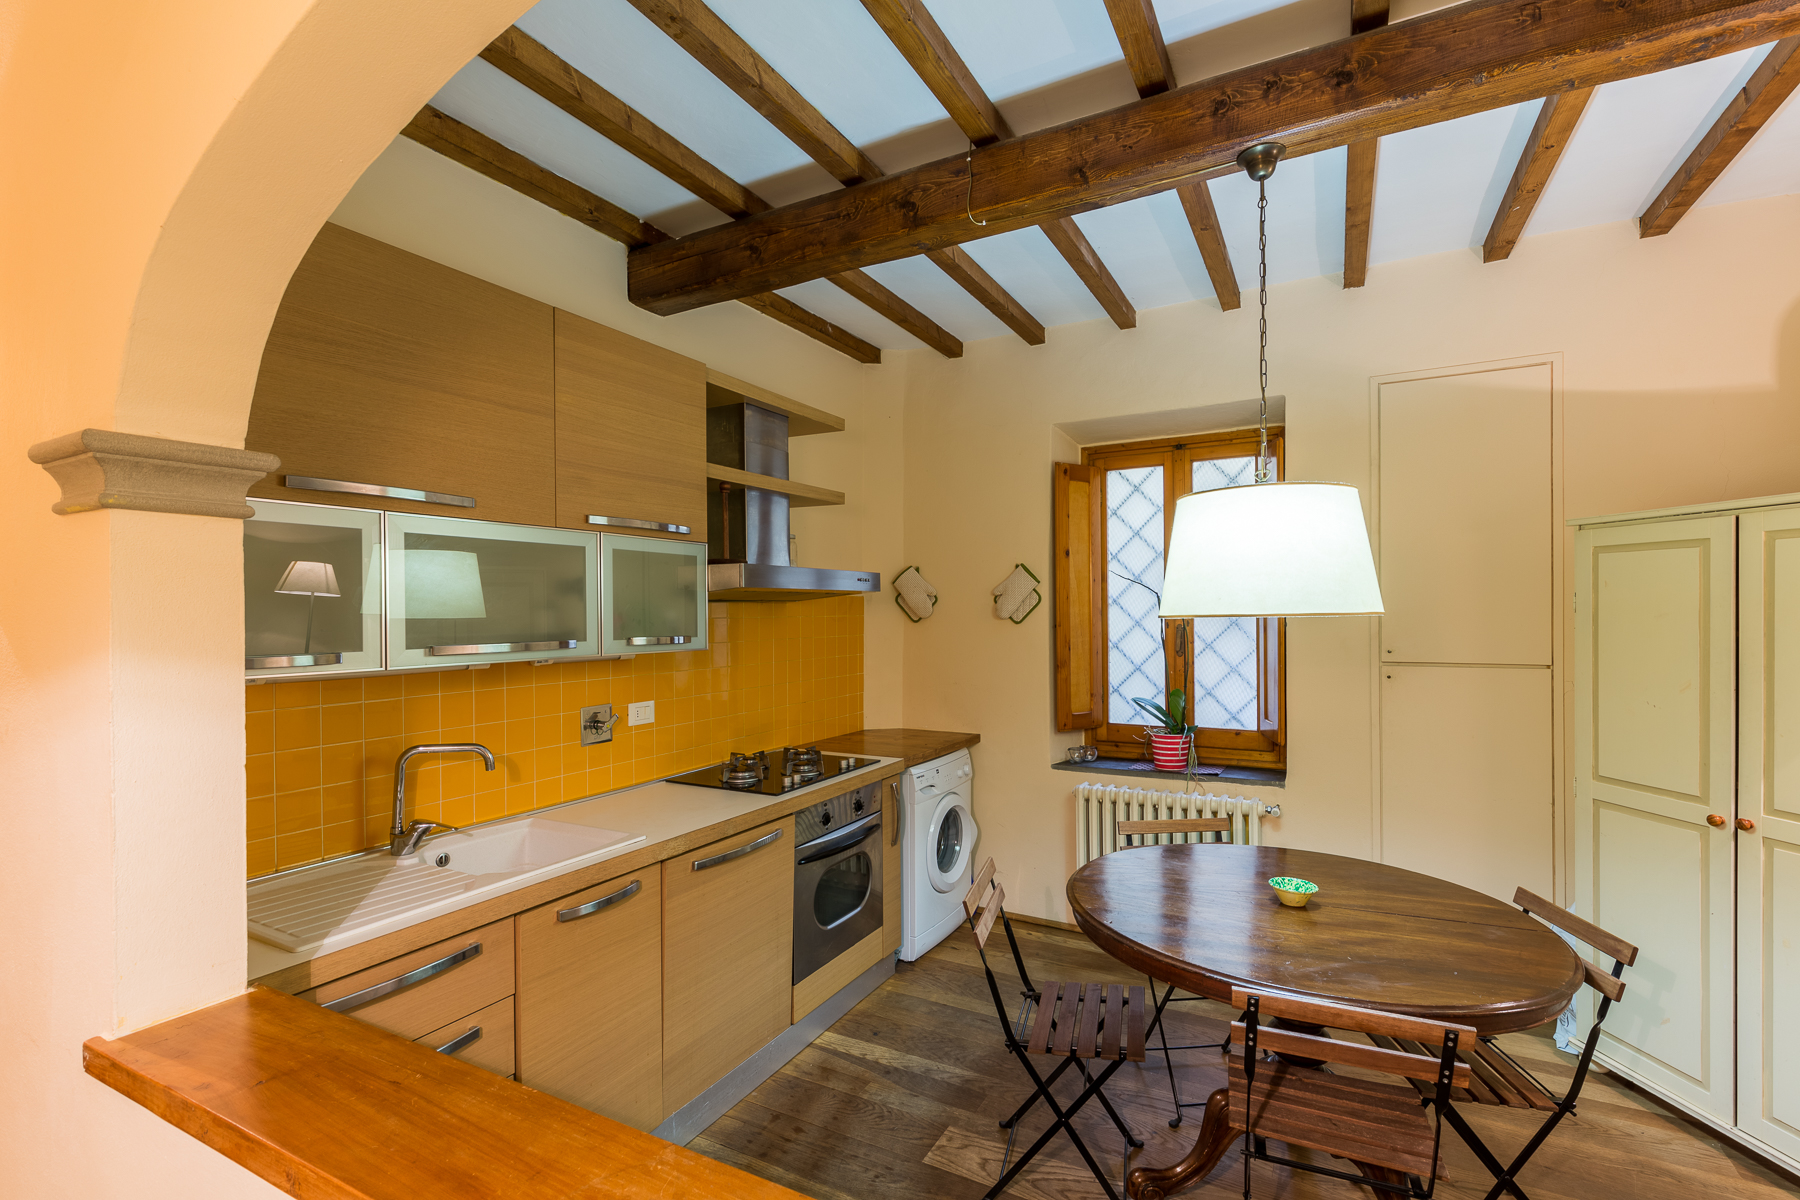 Additional photo for property listing at Splendid apartment with garden Via San Giovanni Firenze, Florence 50100 Italien